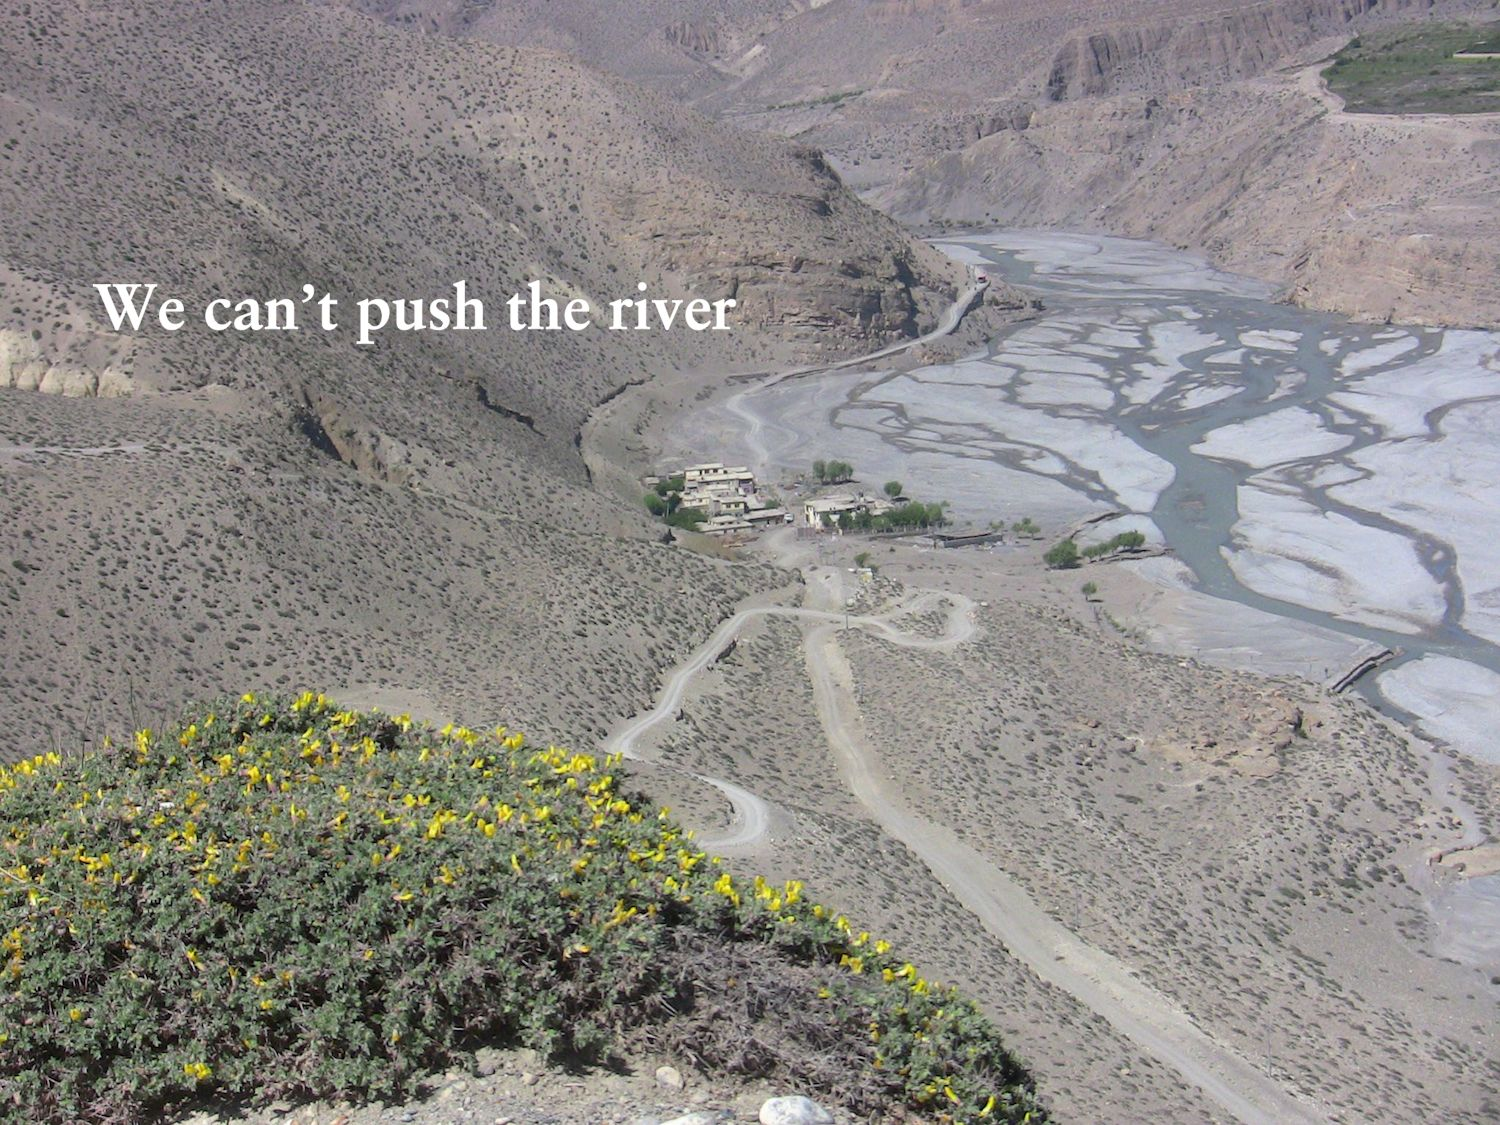 We can't push the river.jpg